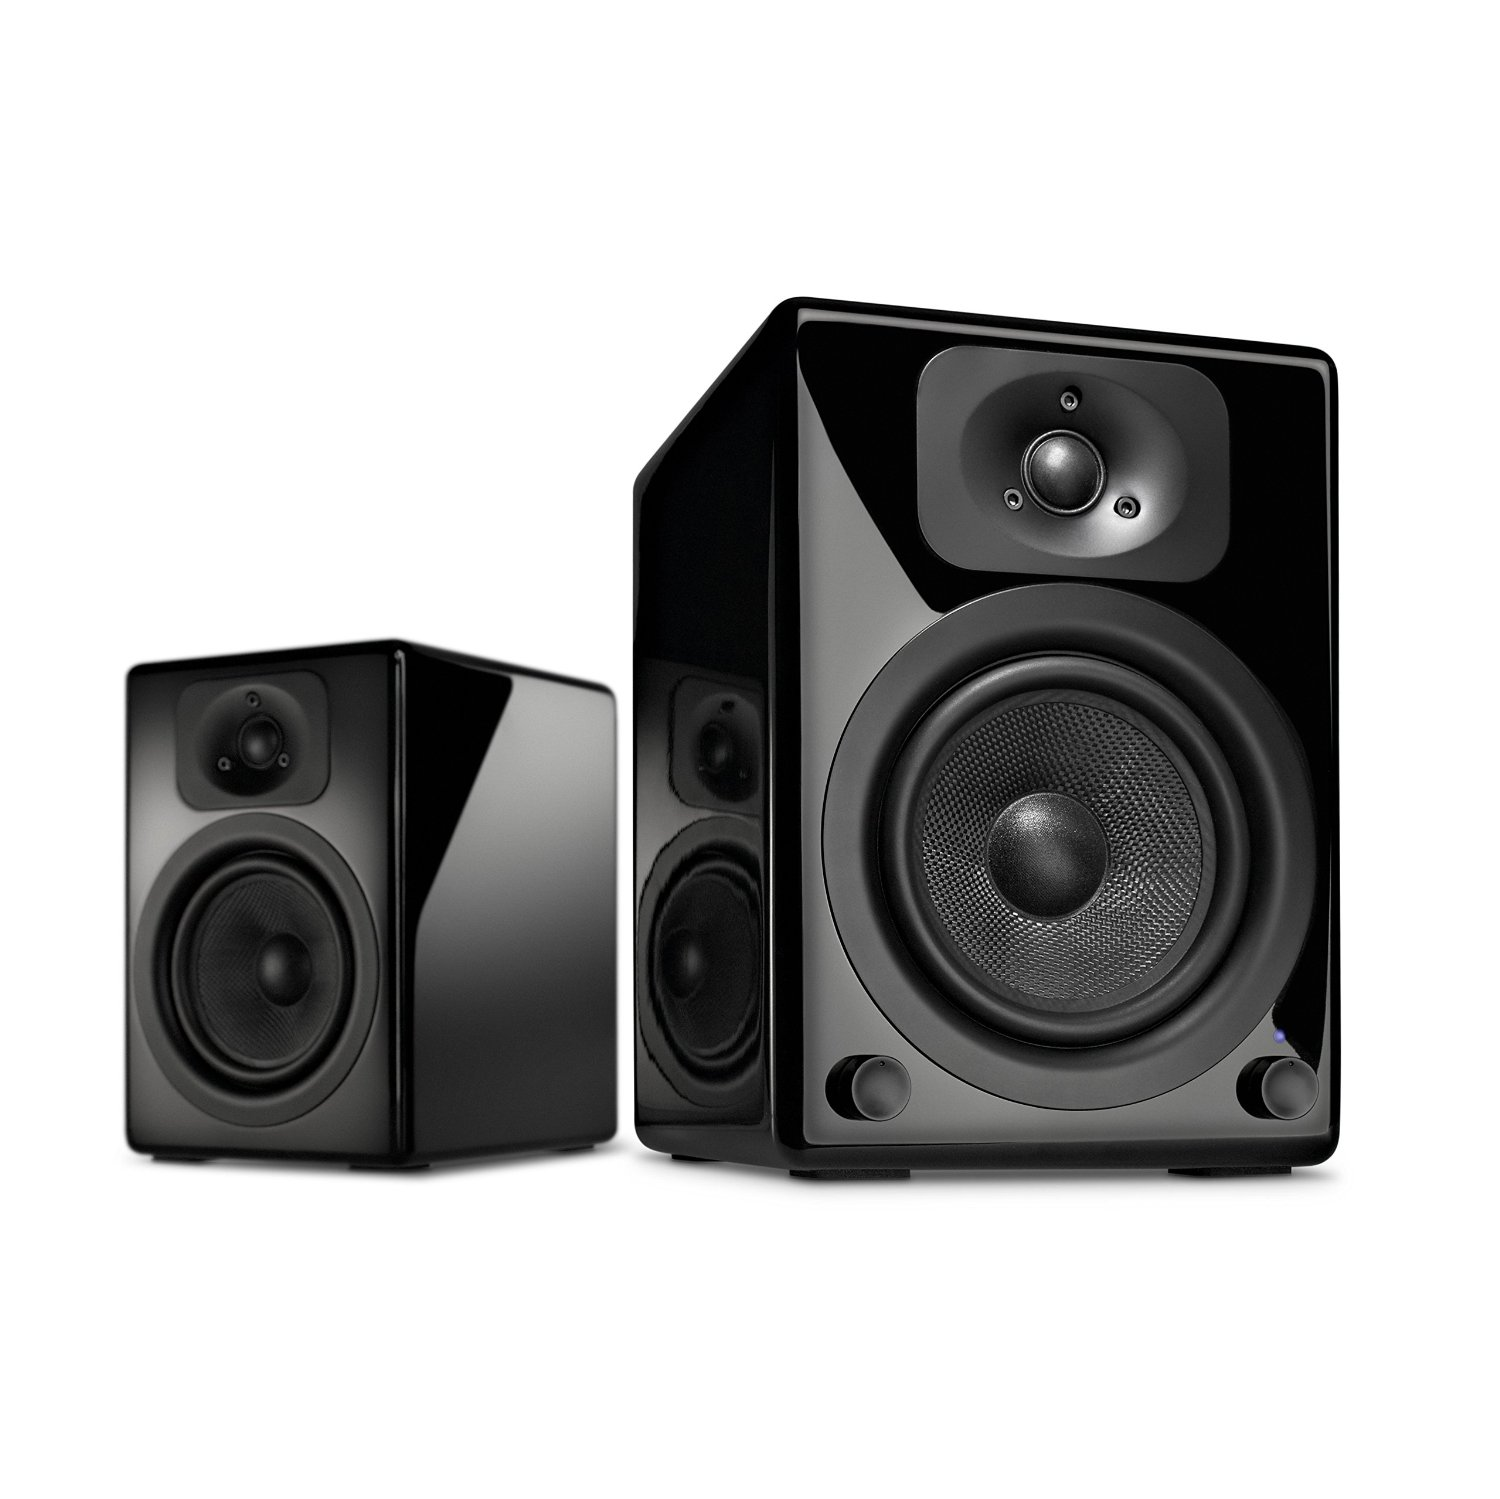 Wavemaster TWO BT